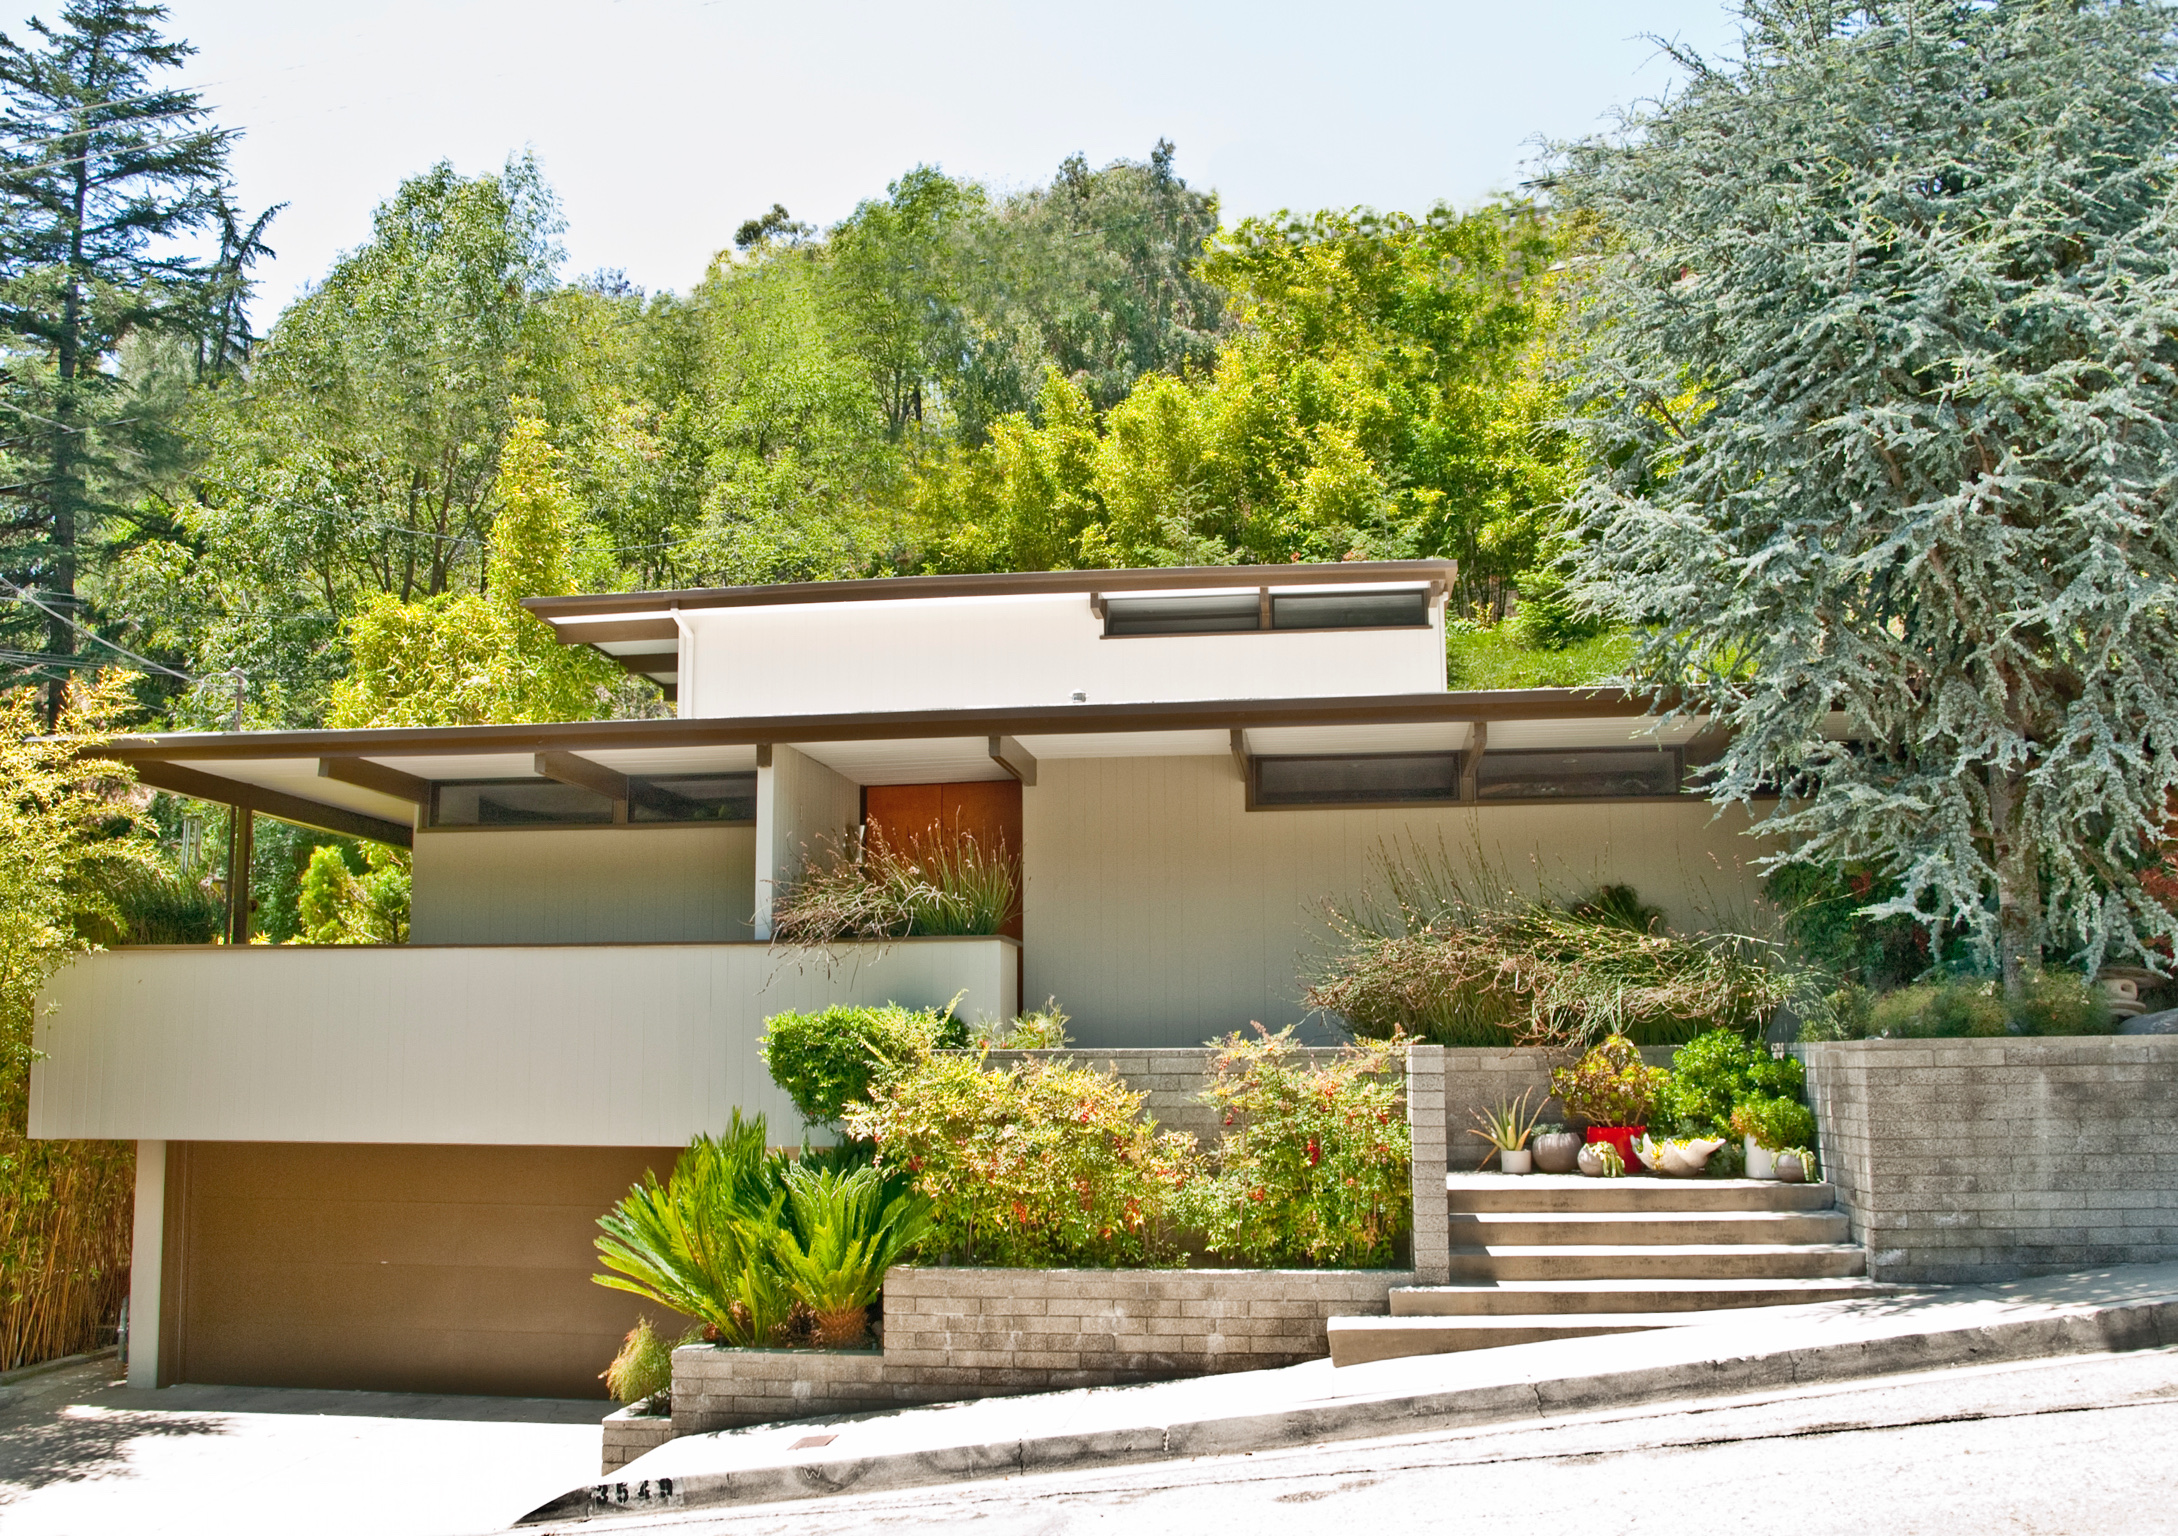 Phil Missig - Real Estate - Architectural Significant Property - Studio City - Calvin Straub - Post & Beam - Mid Century Modern